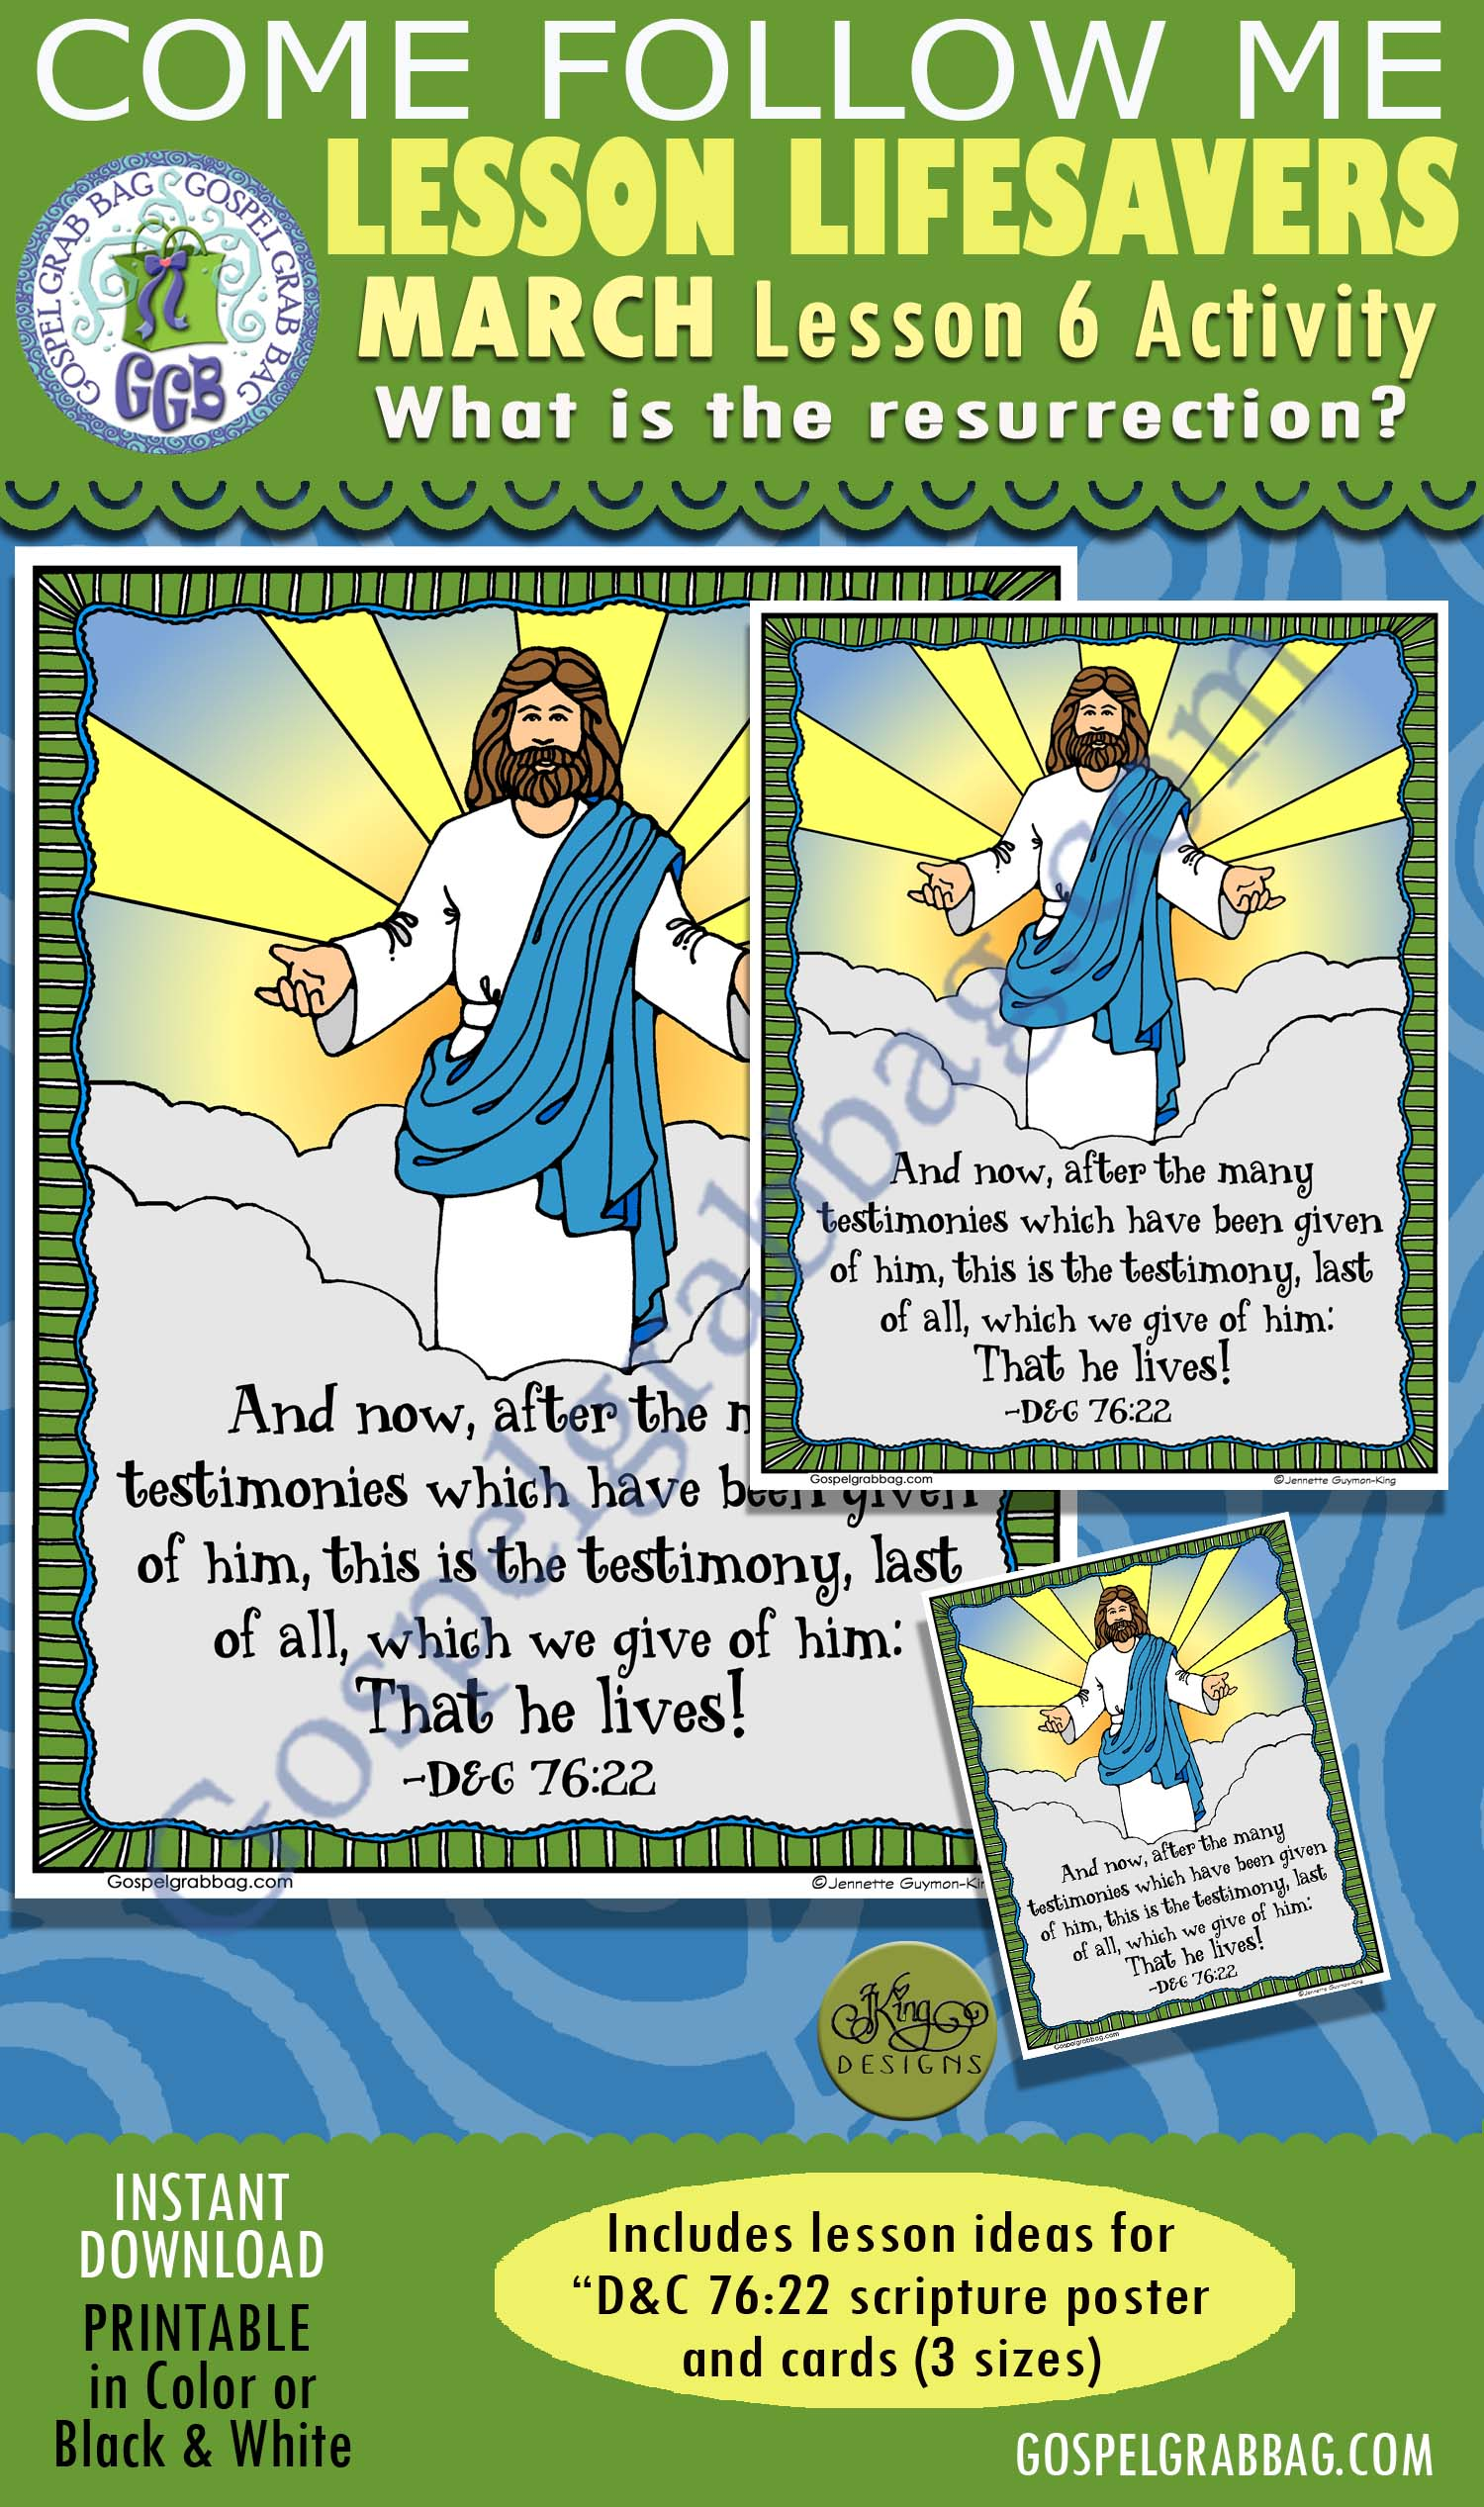 """$2.00 MARCH Lesson 6 Come Follow Me """"What is the resurrection?"""" ACTIVITY: D&C 76:22 He lives!, Scritpure Poster / Cards"""